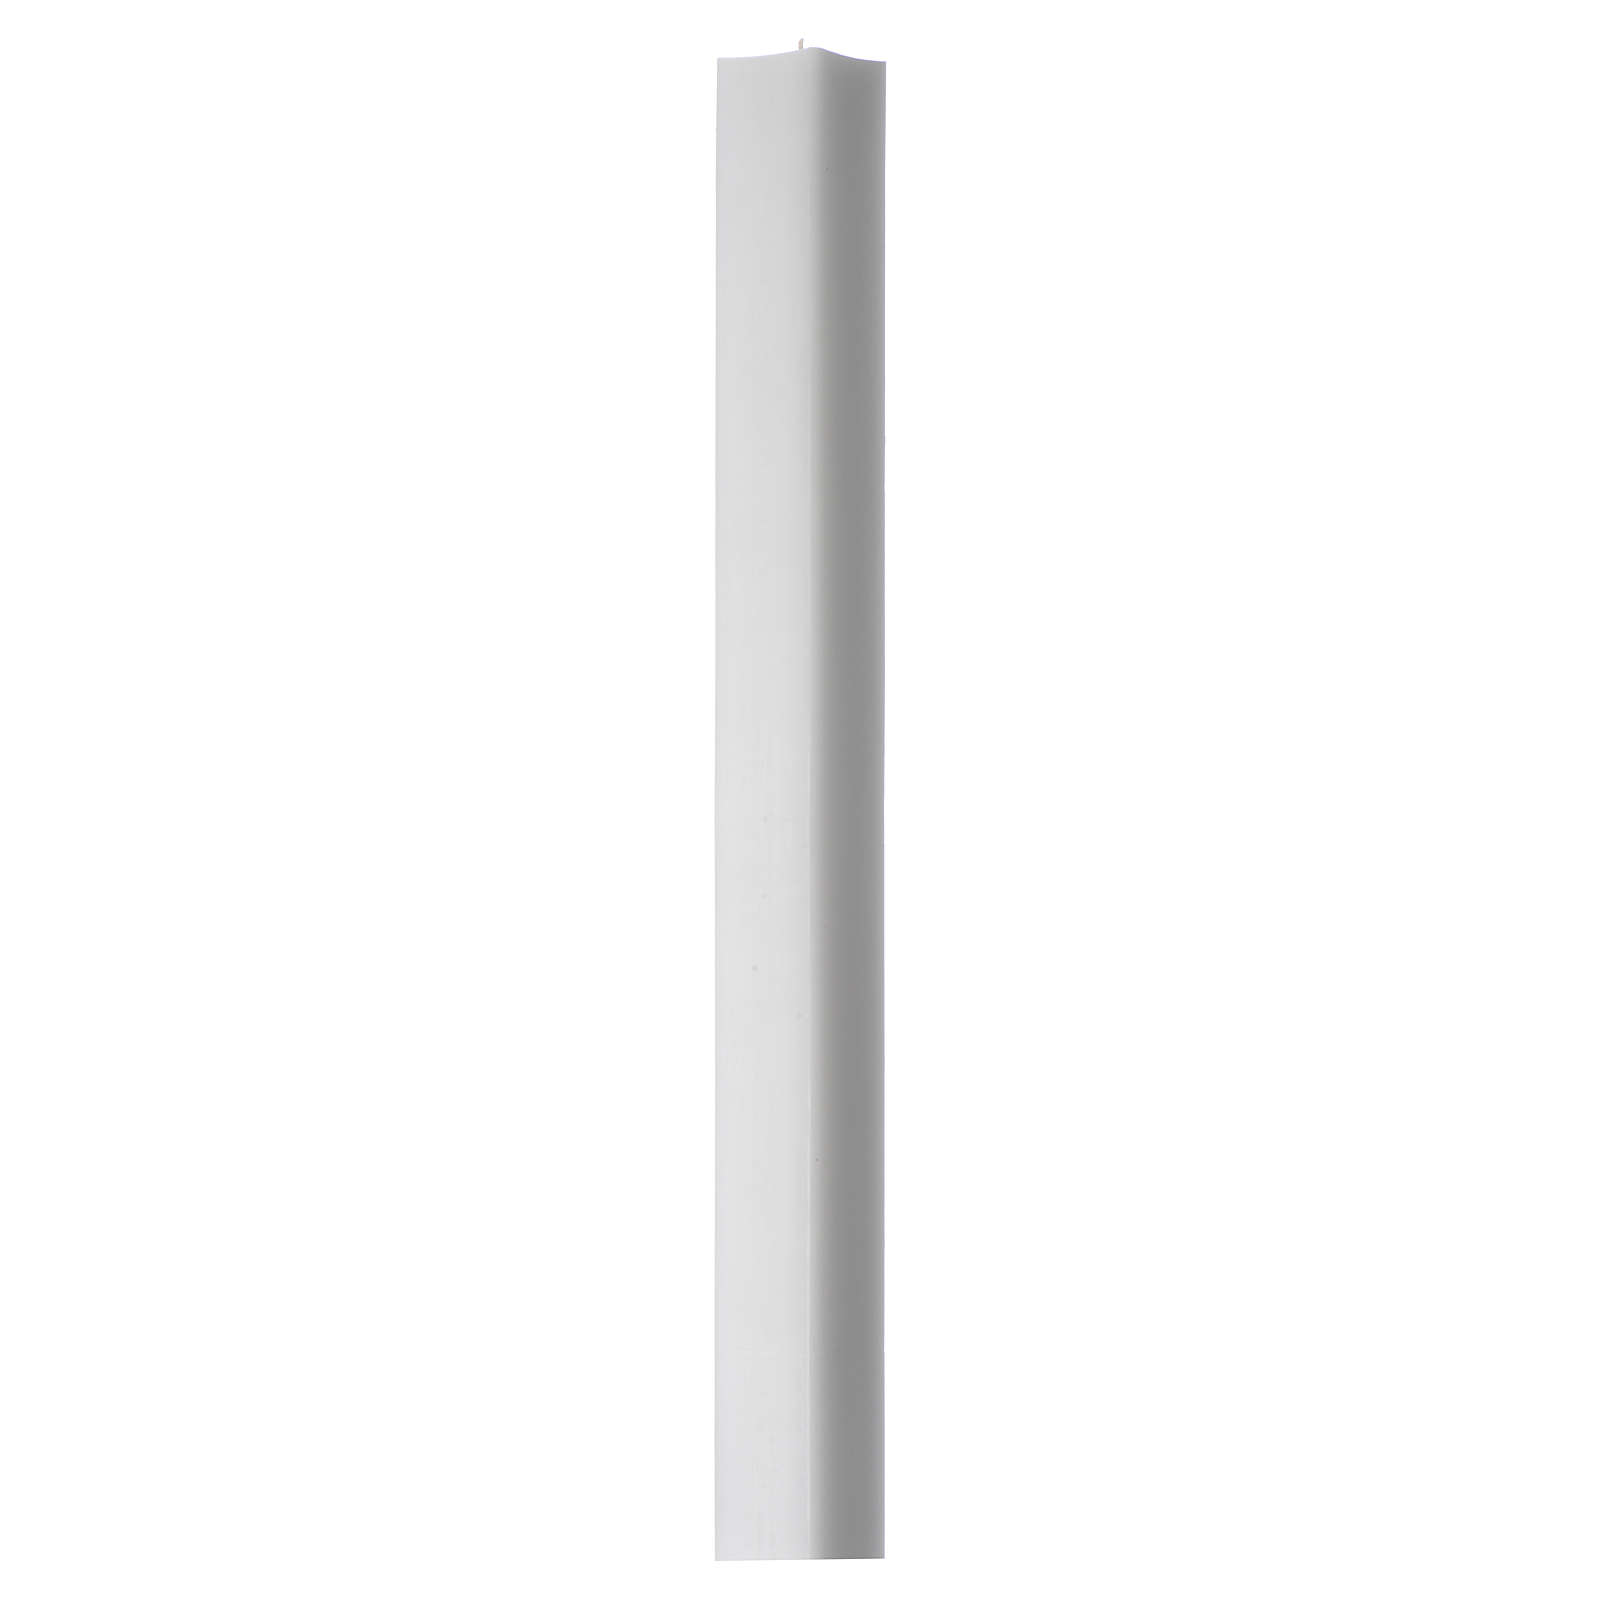 White square candle 800x50x50mm in white wax, pack of 6 3